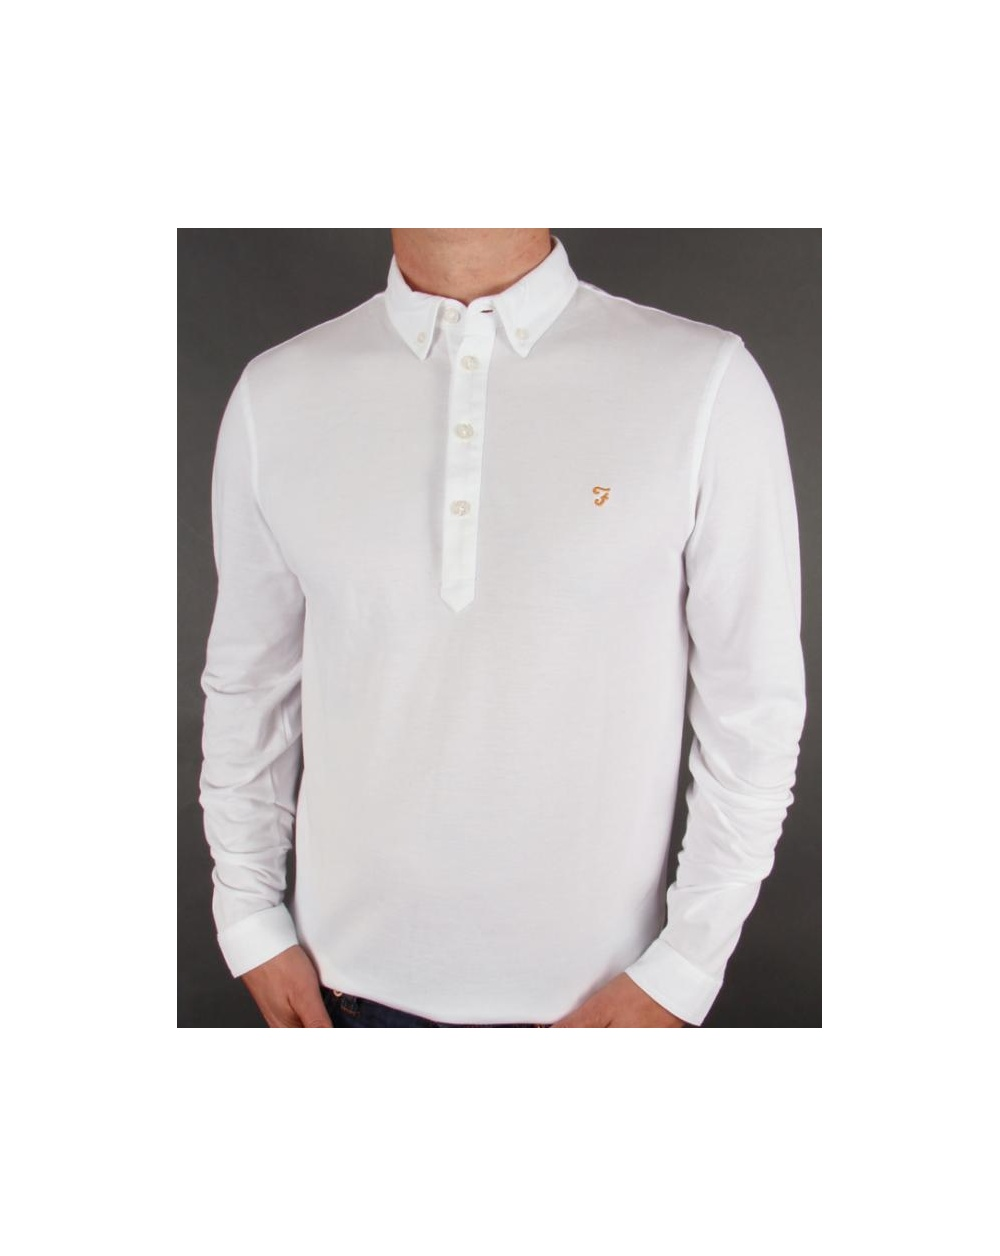 d1ebcb58 Farah Vintage Knitted Polo Shirt – EDGE Engineering and Consulting ...